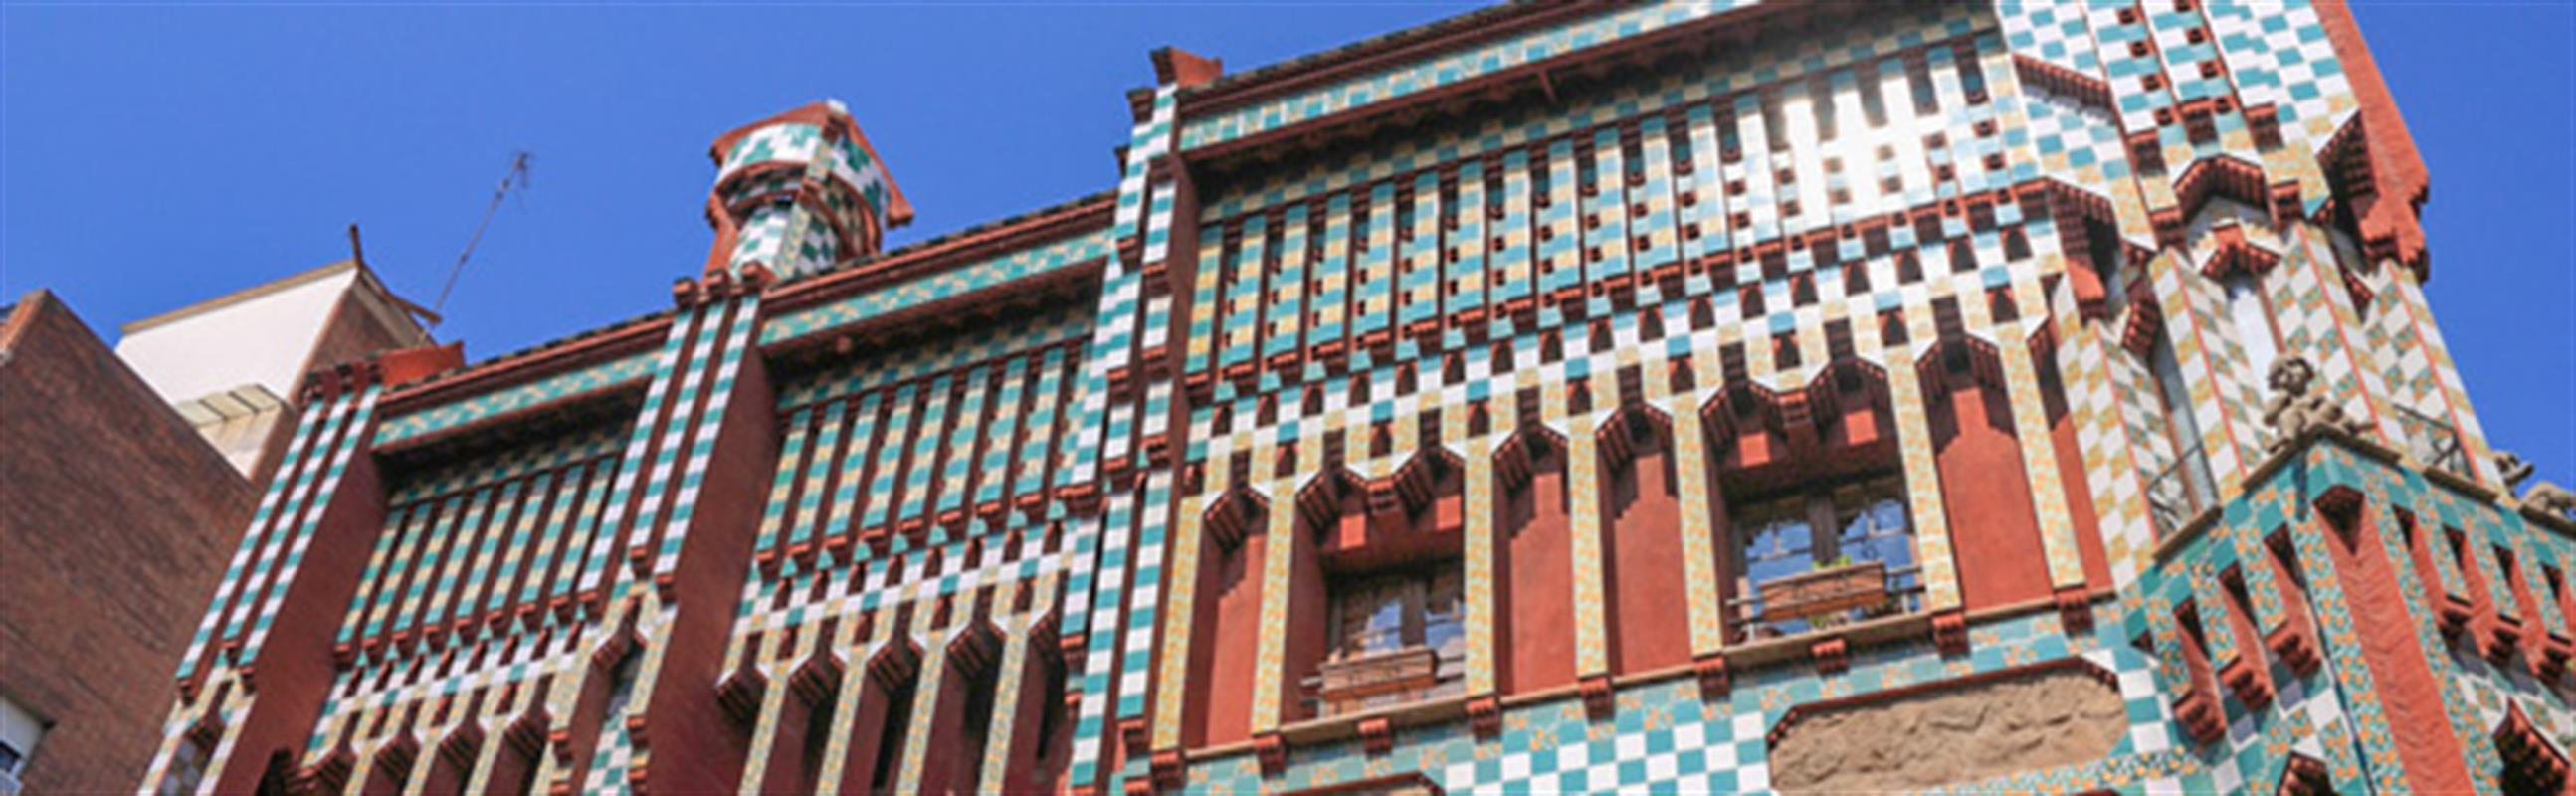 Casa vicens another gaud building will open in barcelona - Casa vives gaudi ...